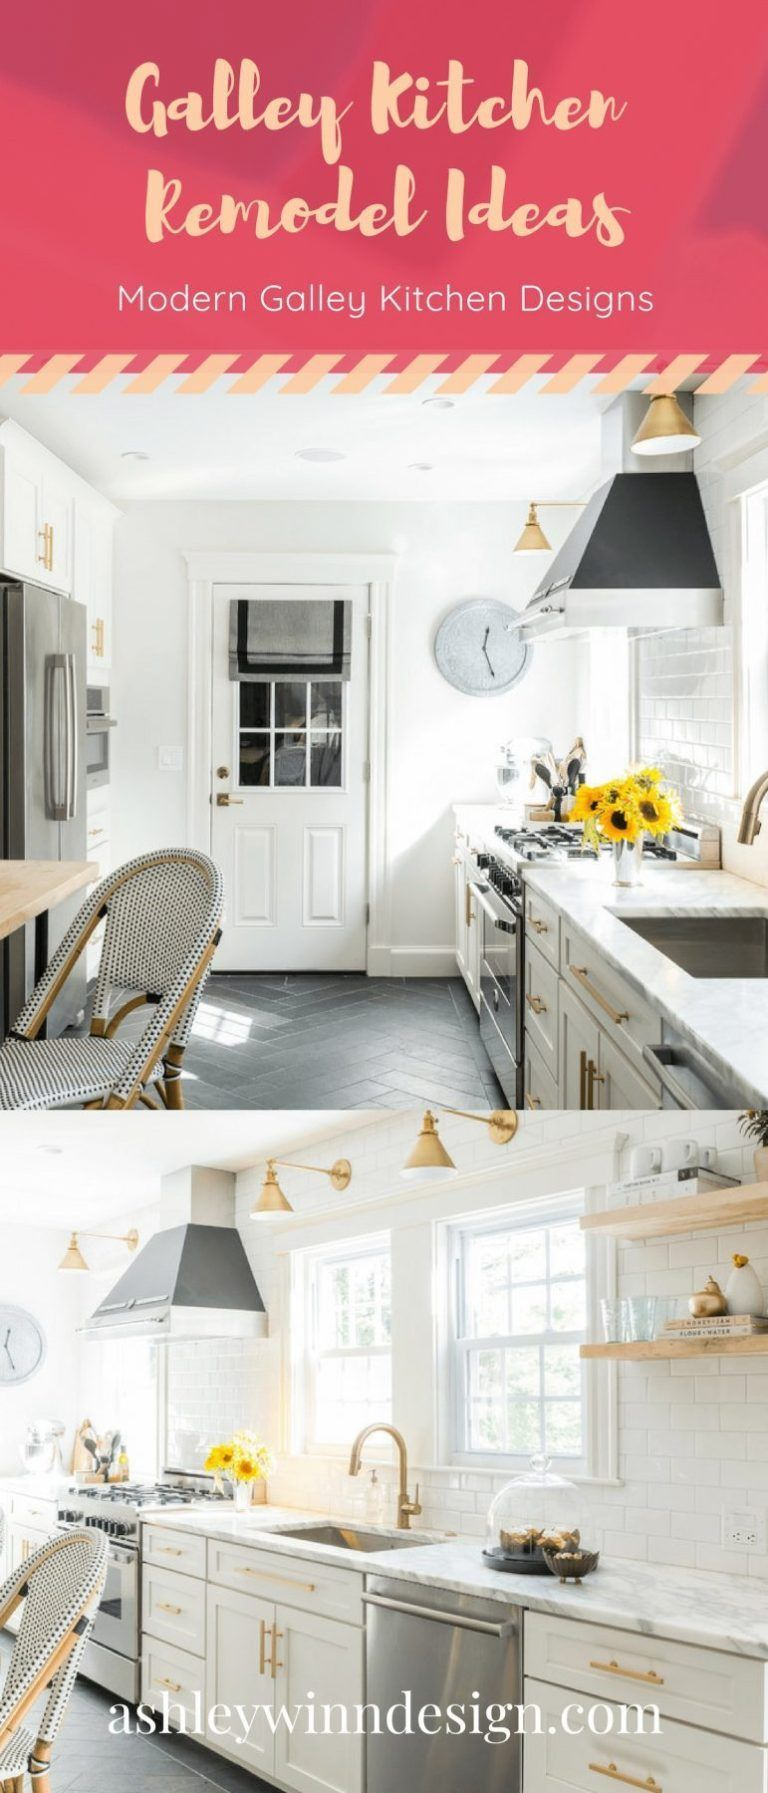 29 Awesome Galley Kitchen Remodel Ideas, Design, & Inspiration #whitegalleykitchens 29 Awesome Galley Kitchen Remodel Ideas, Design, & Inspiration #opengalleykitchen